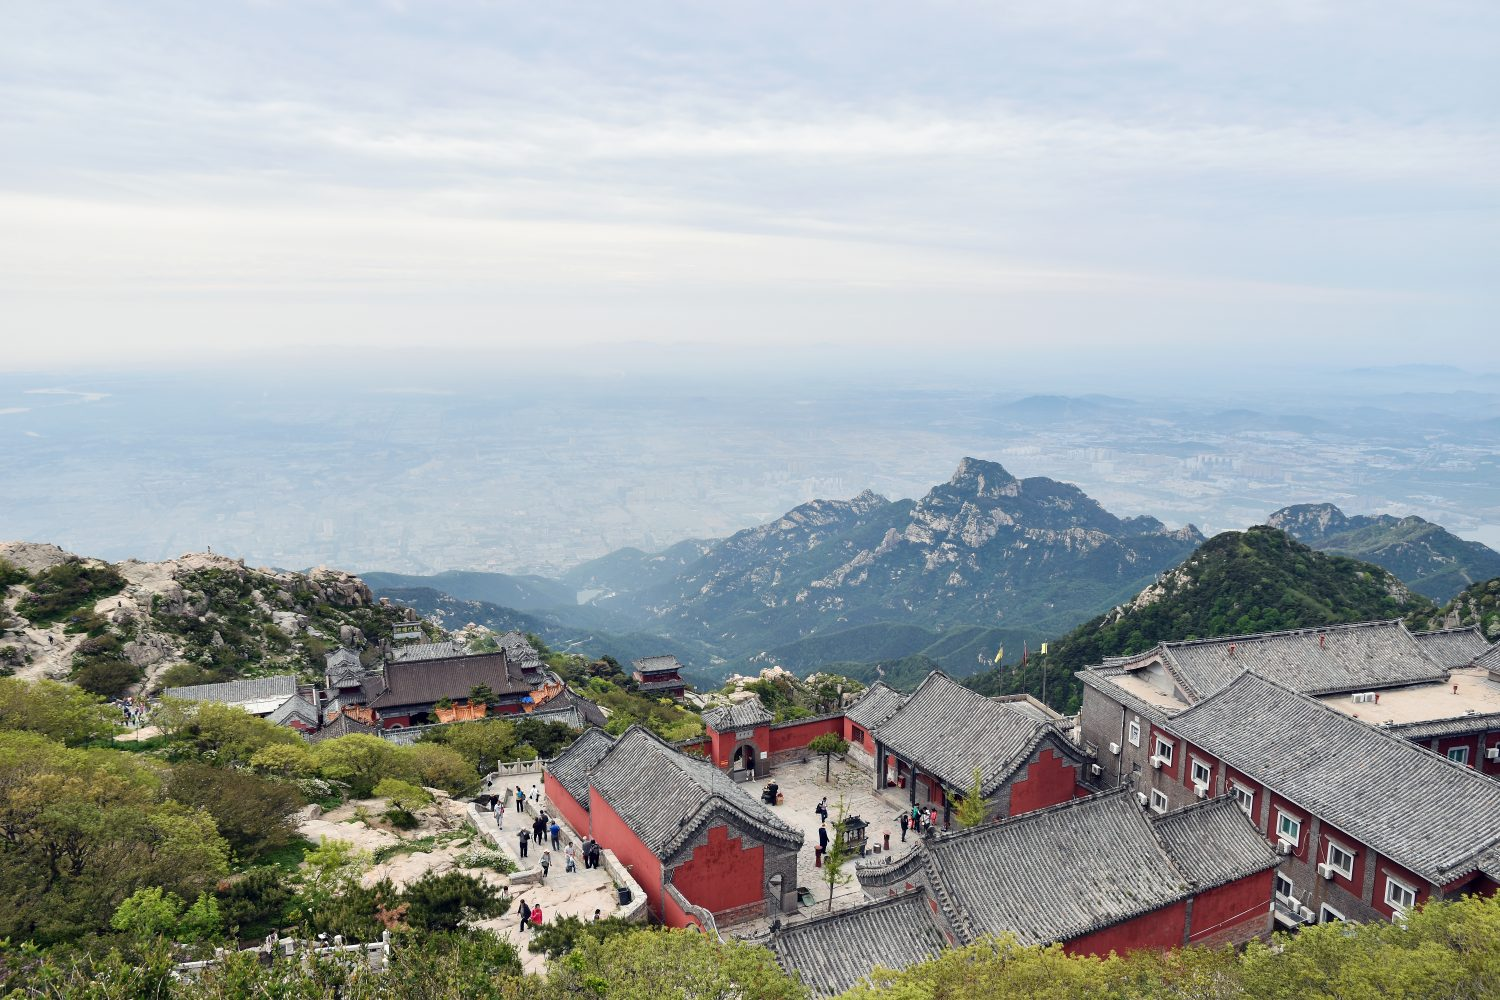 City scenery and red Buddhist temple overlooking from Taishan China